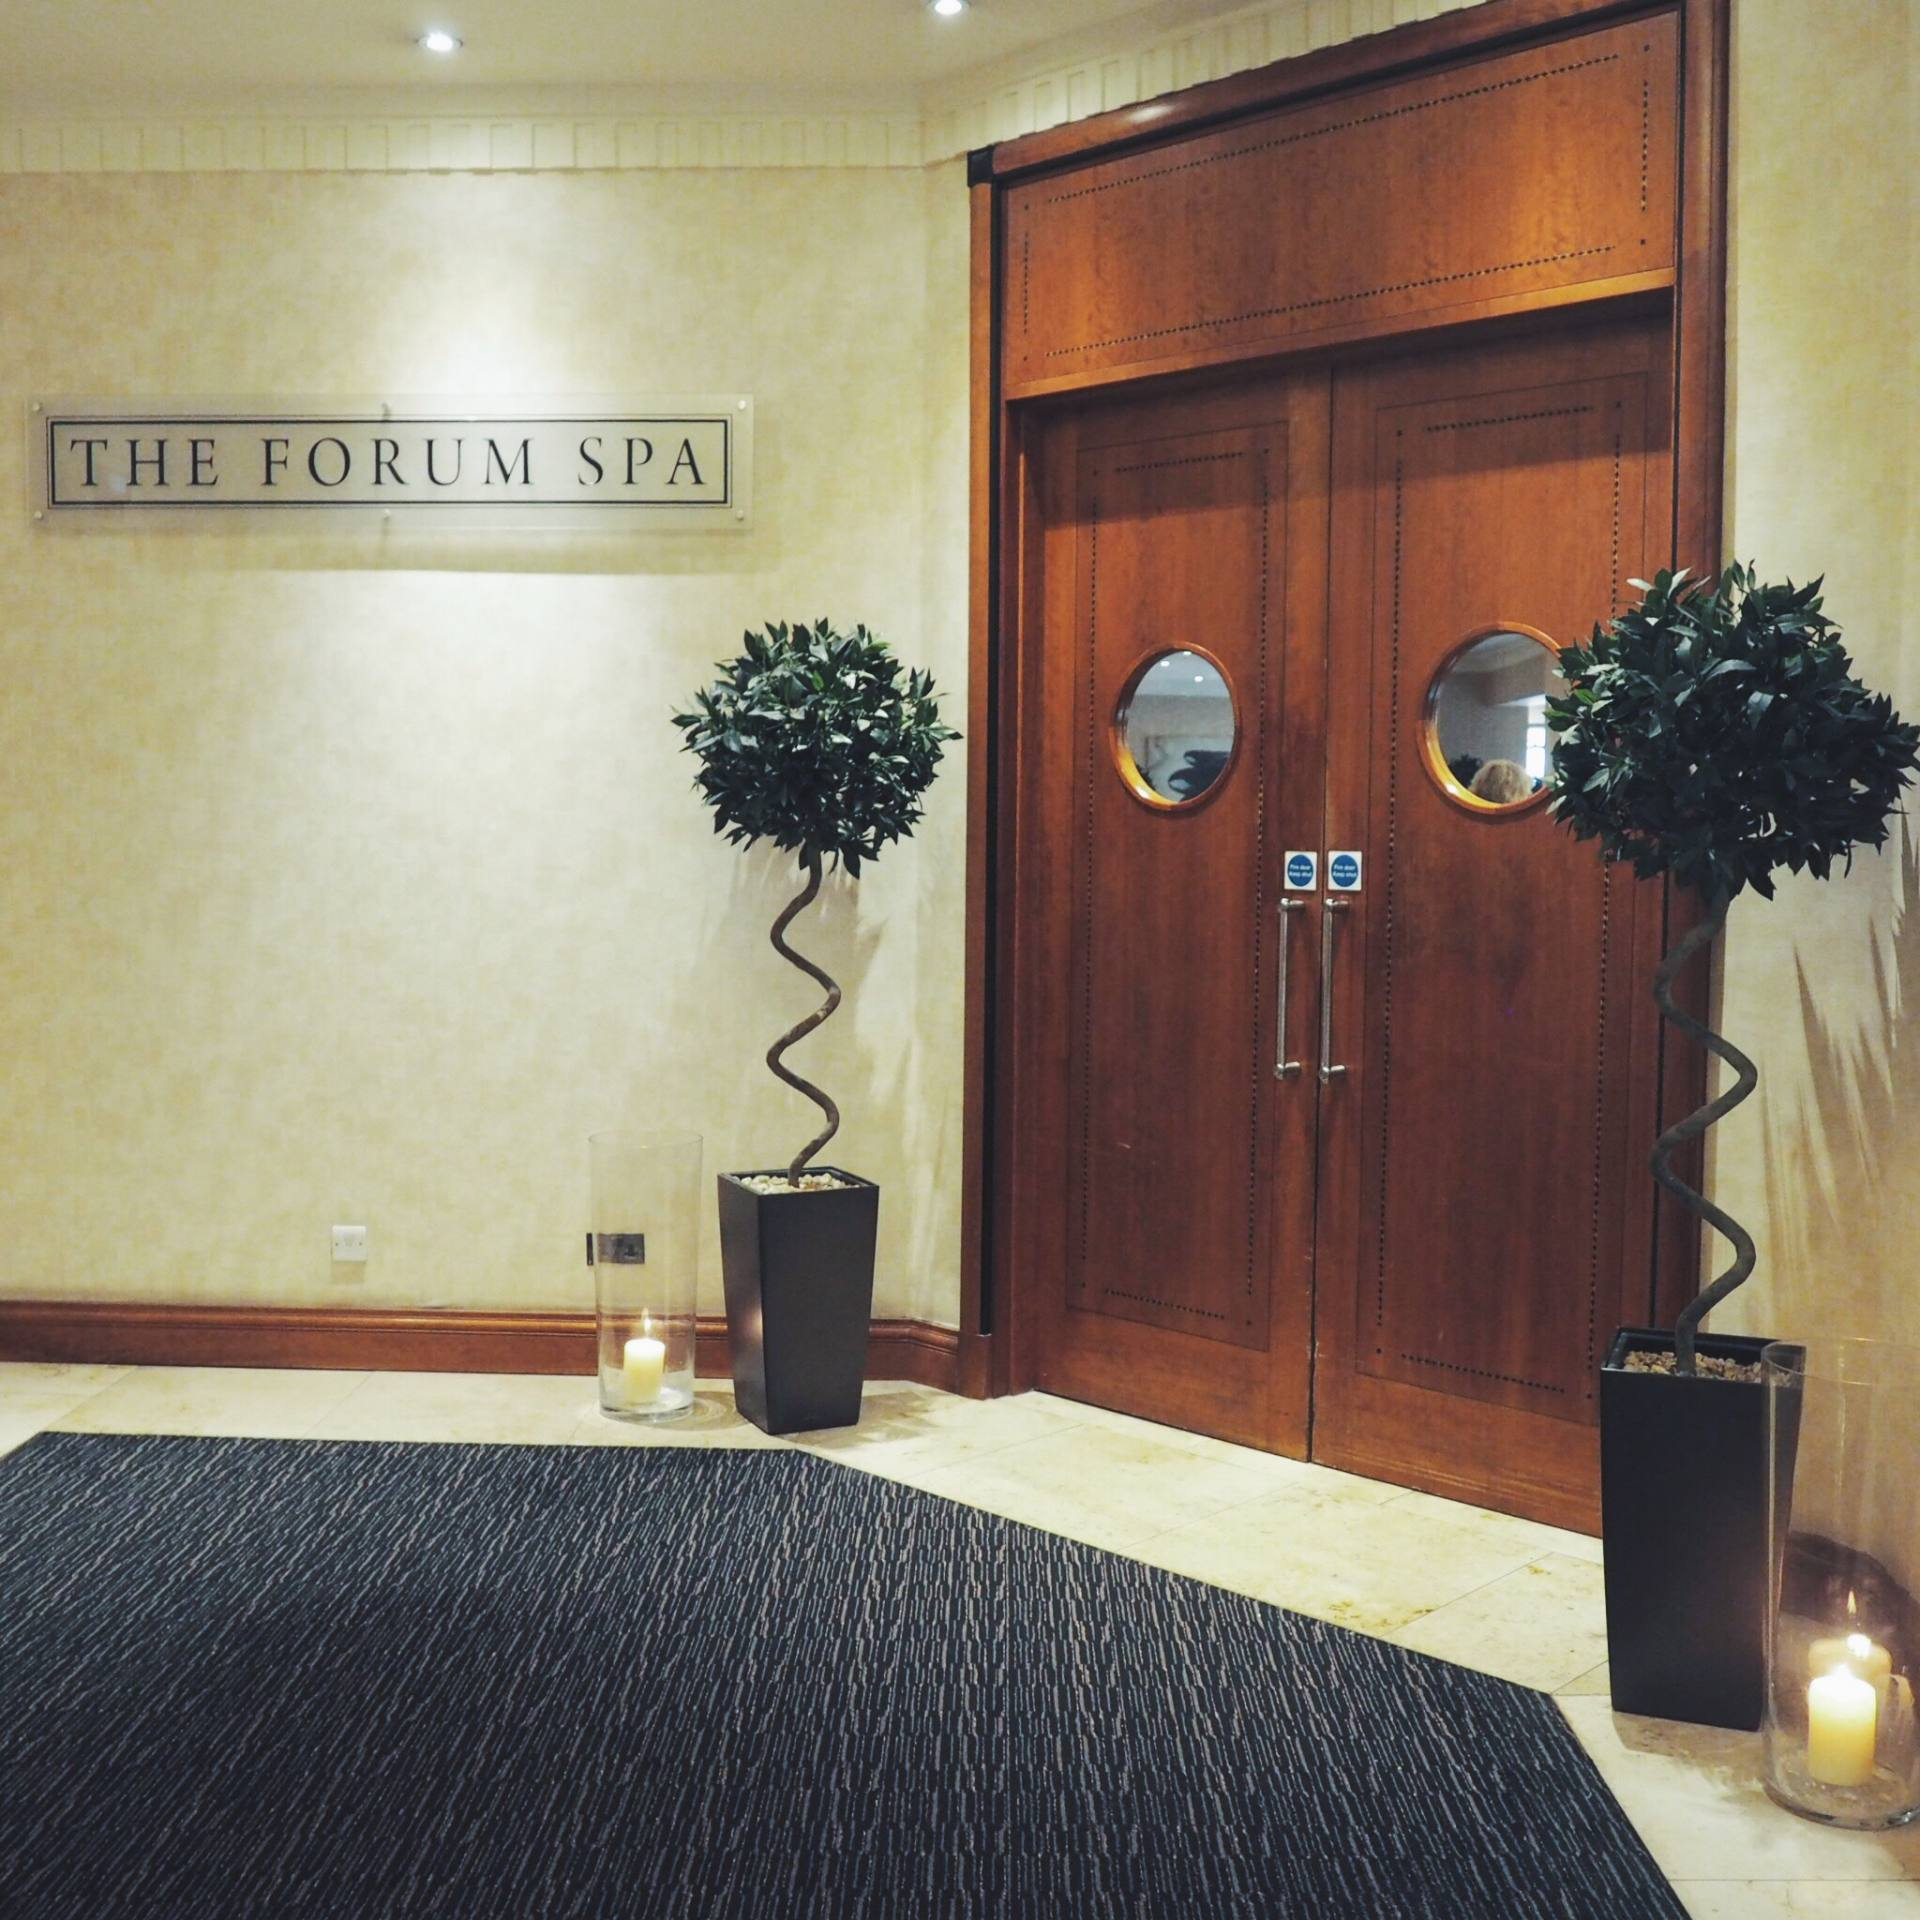 The Forum Spa at the Celtic Manor Resort